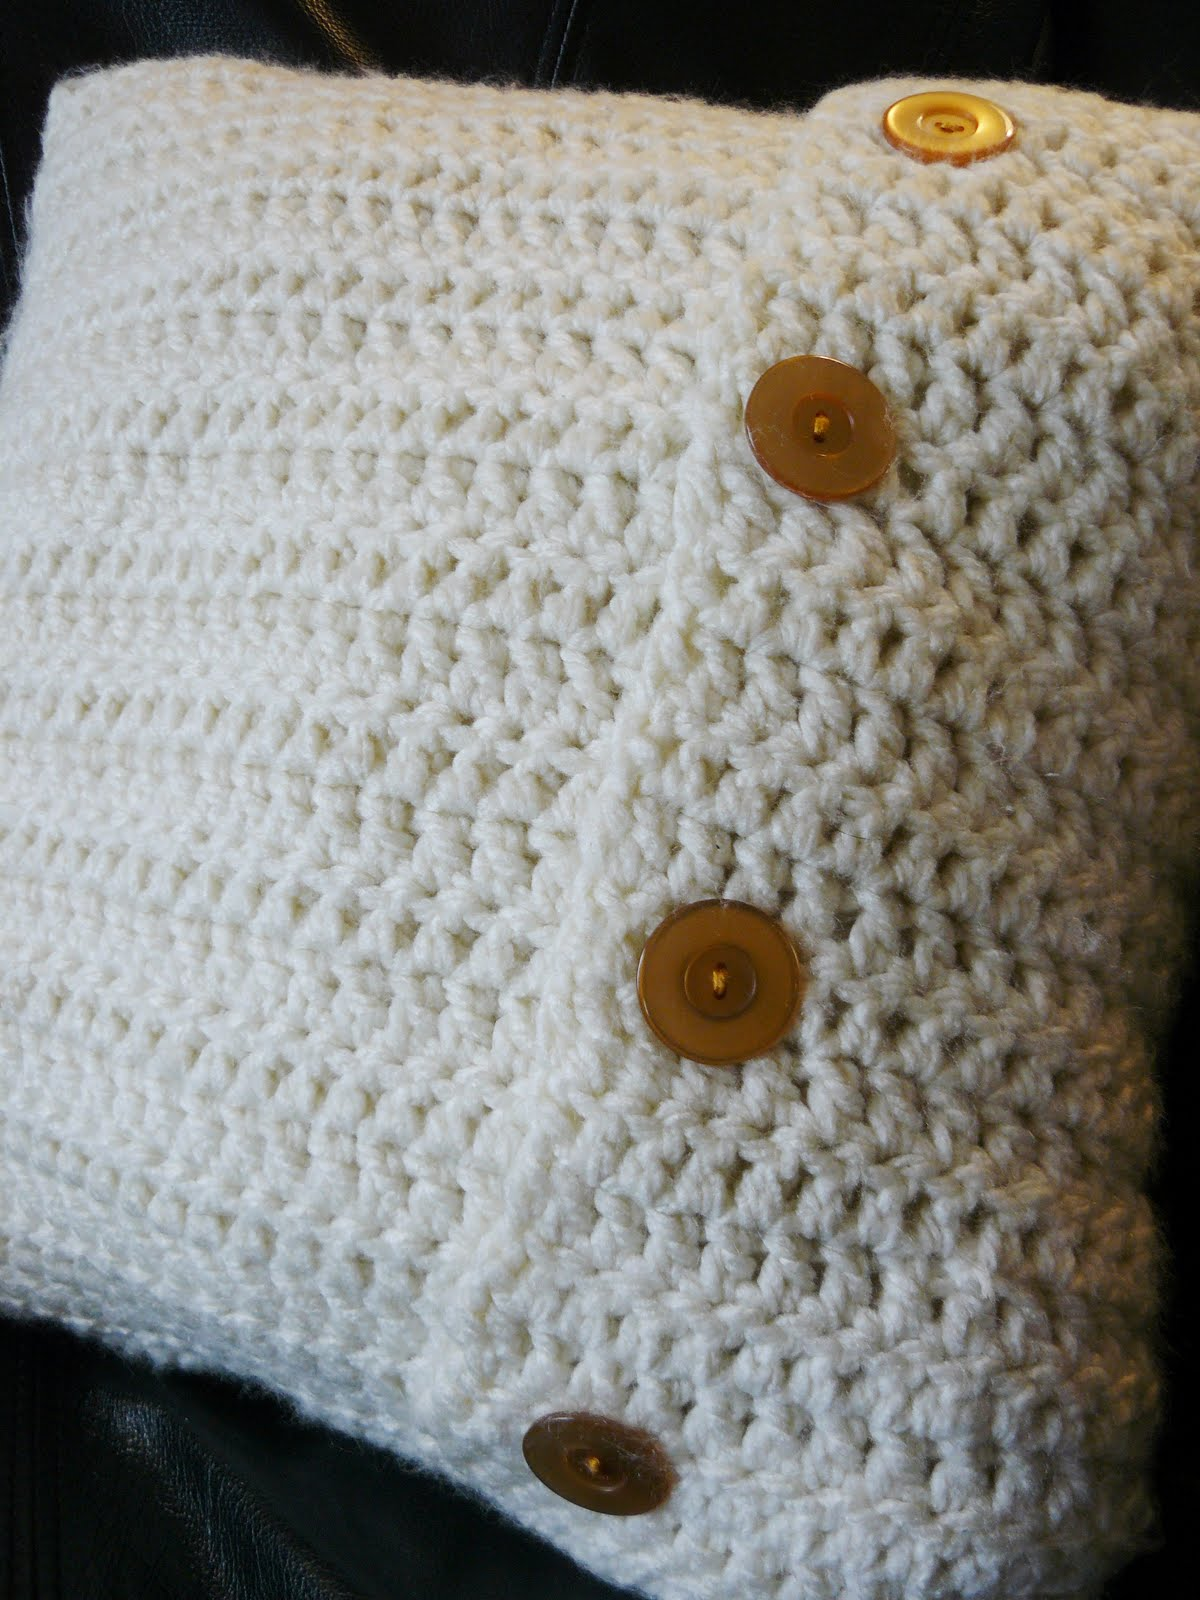 The Woven Home: Crochet Projects: Pillow